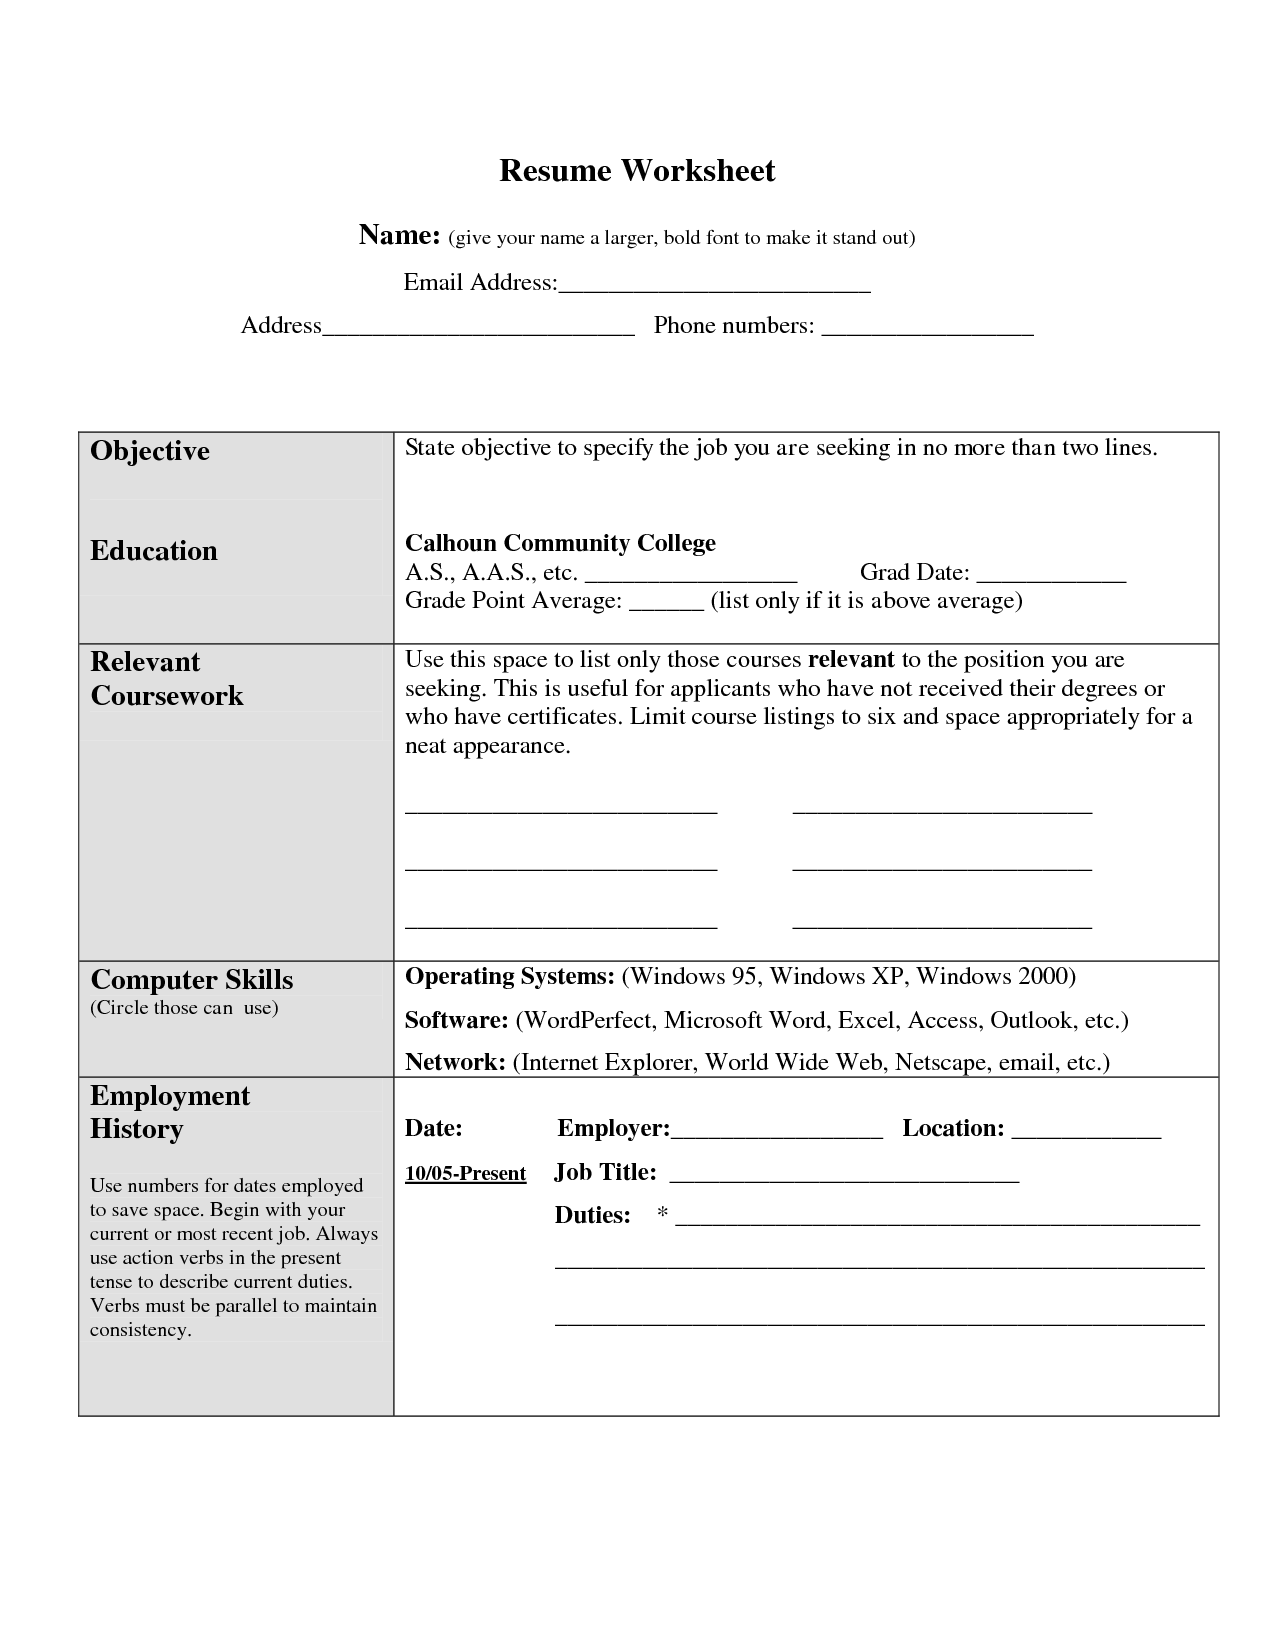 worksheet Resume Worksheet For High School Students Grass Fedjp